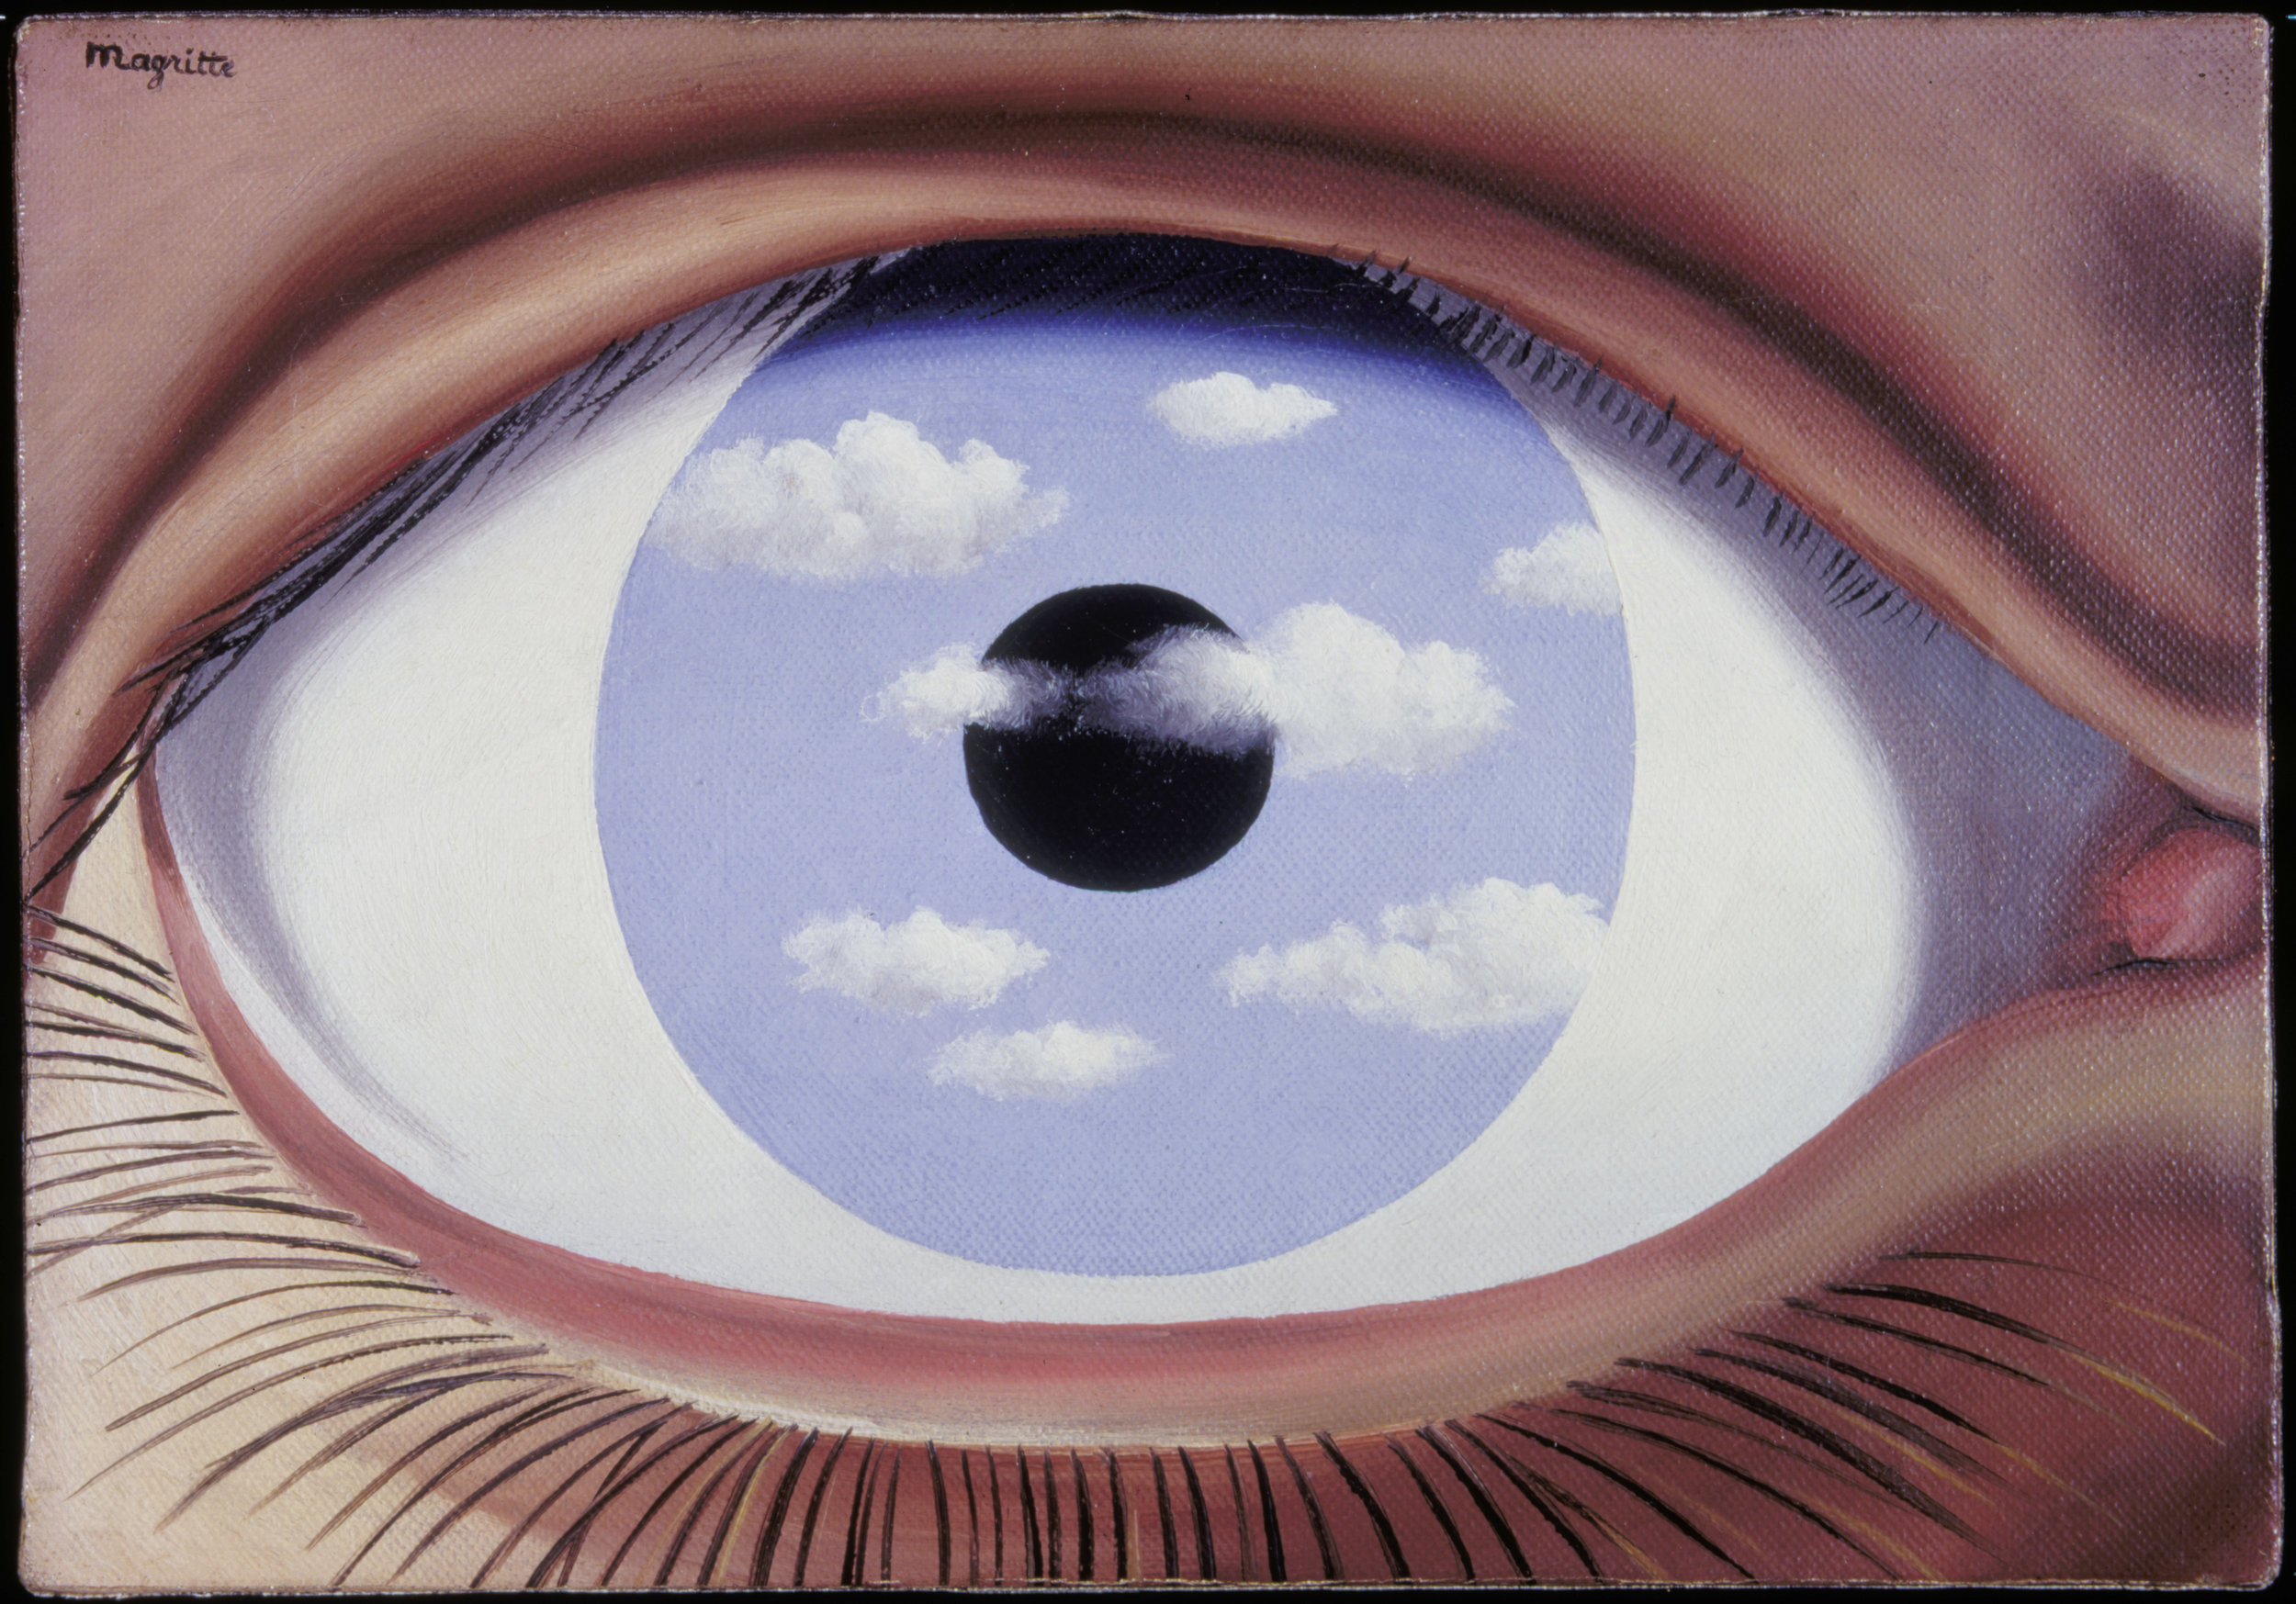 René Magritte ,  The False Mirror , 1935 © 2018 C. Herscovici / Artists Rights Society (ARS), New York